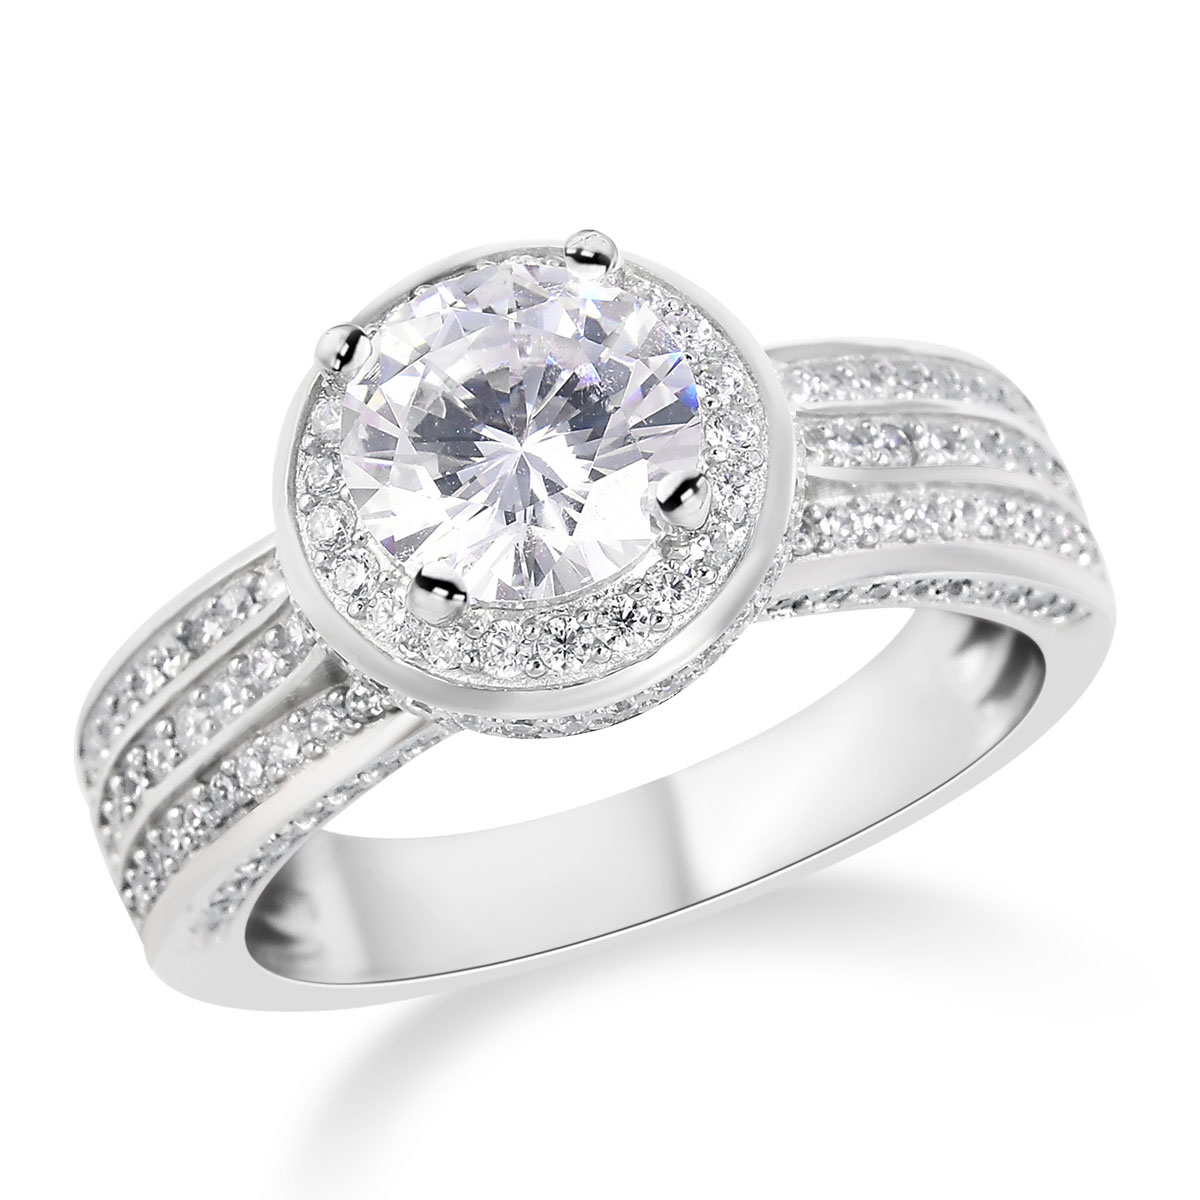 0fca458d7c98a LUSTRO STELLA CZ Halo Ring in Sterling Silver (Size 8.0) 4.56 ctw